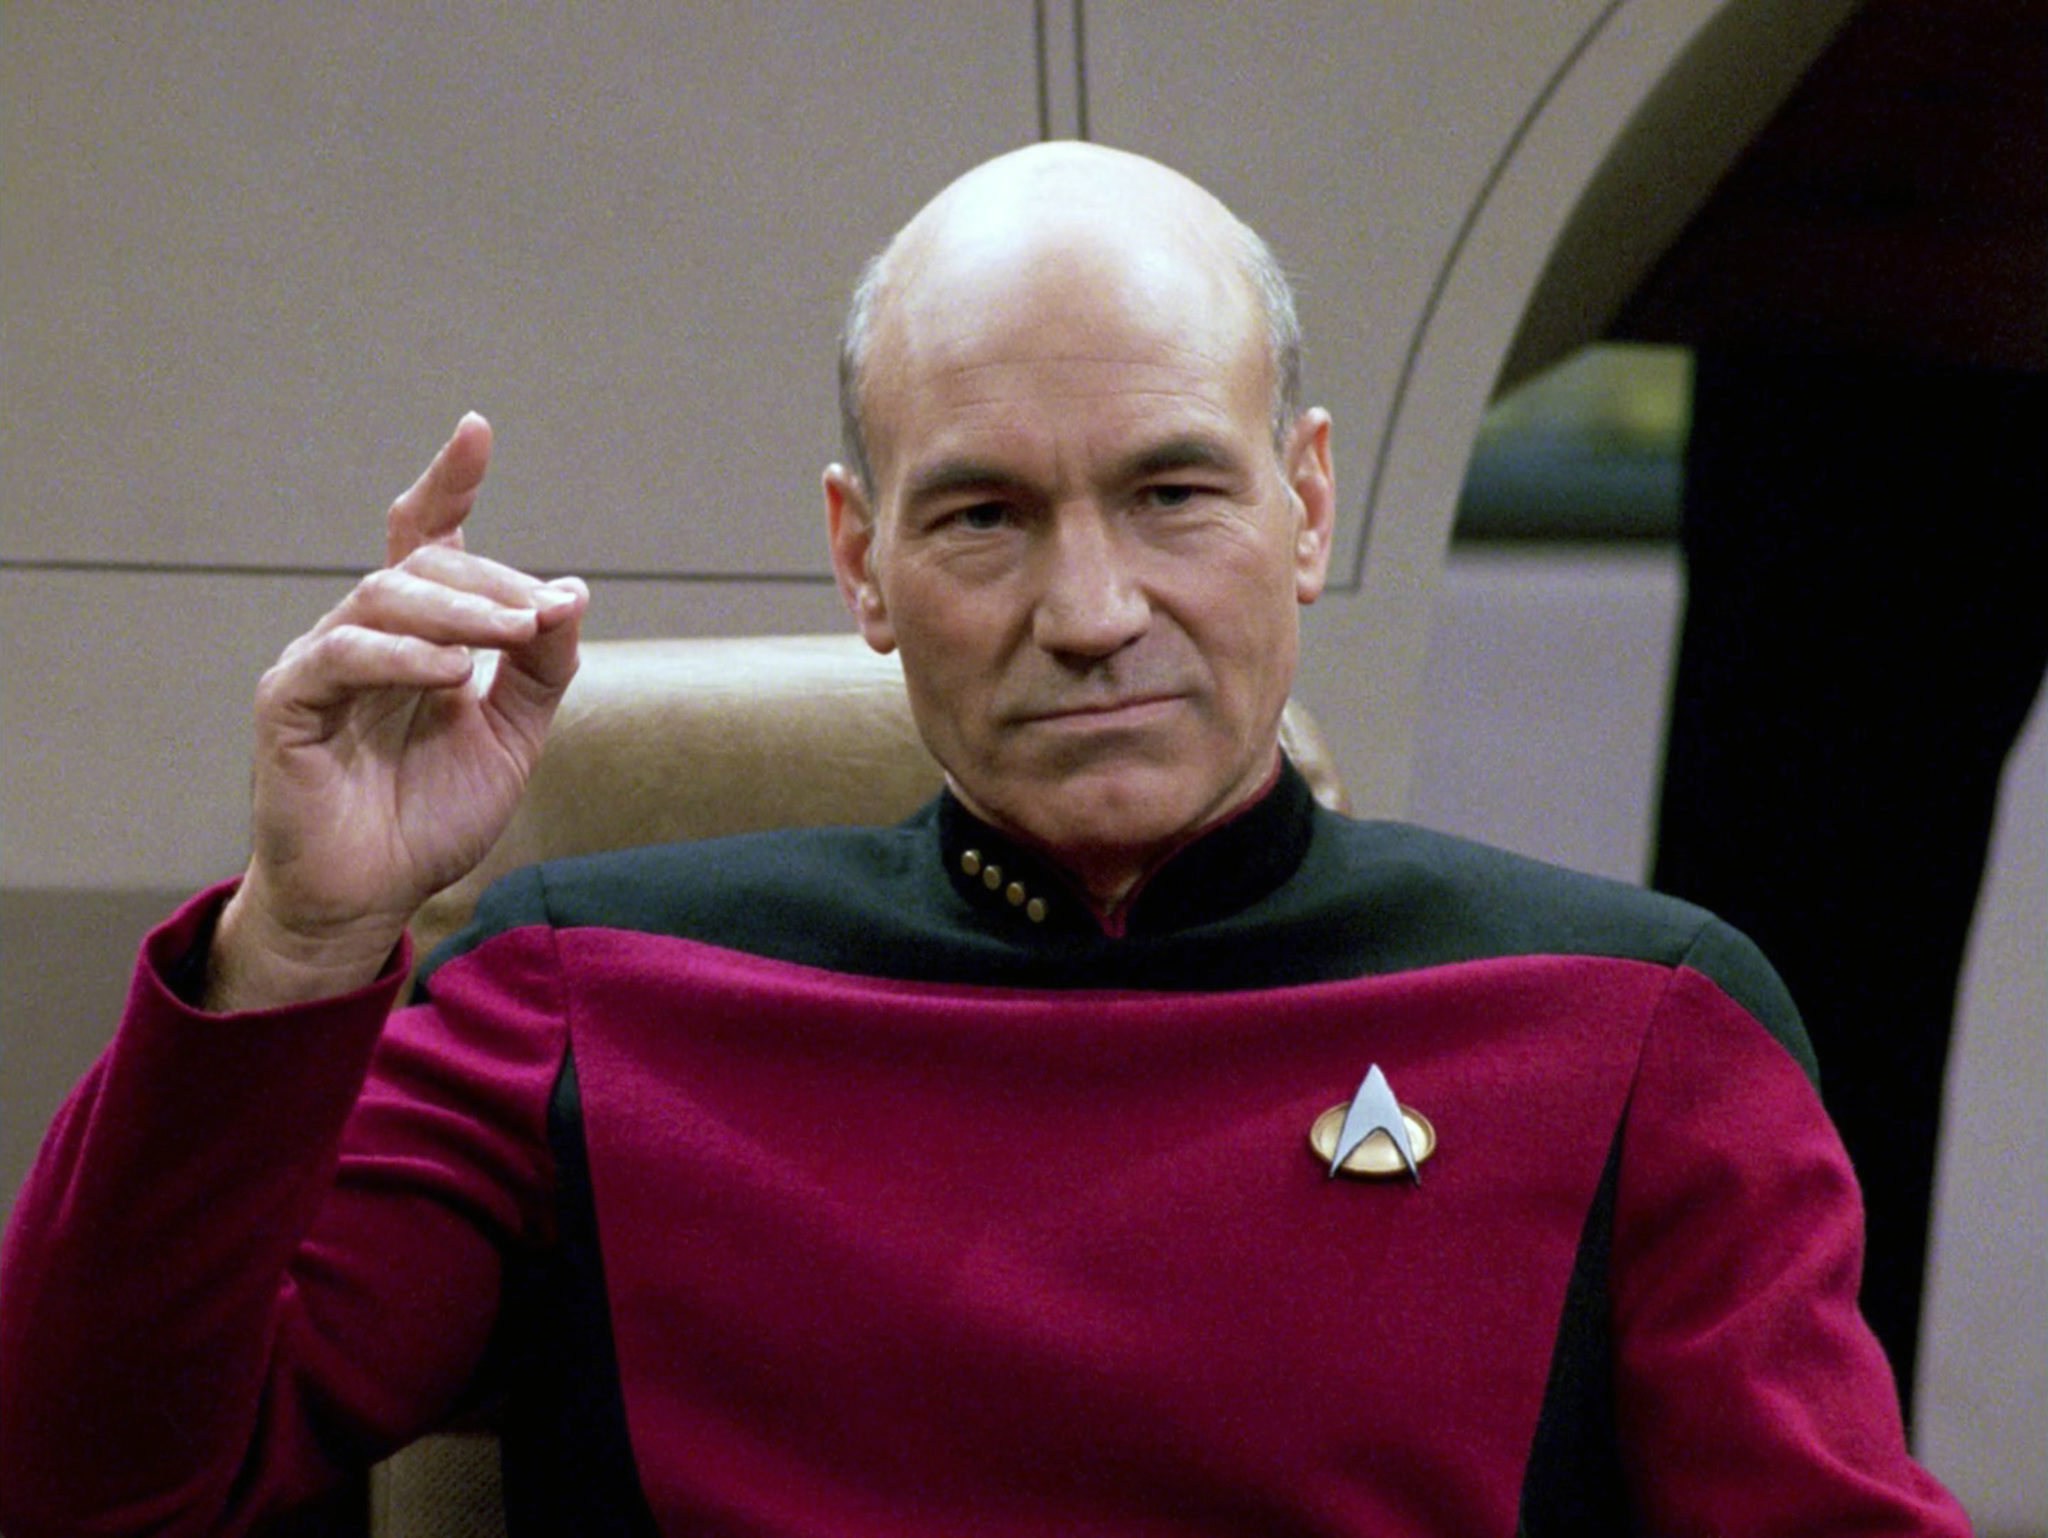 Patrick Stewart played Enterprise captain Jean-Luc Picard from 1987 to 2002, and returned to the role in 2020.